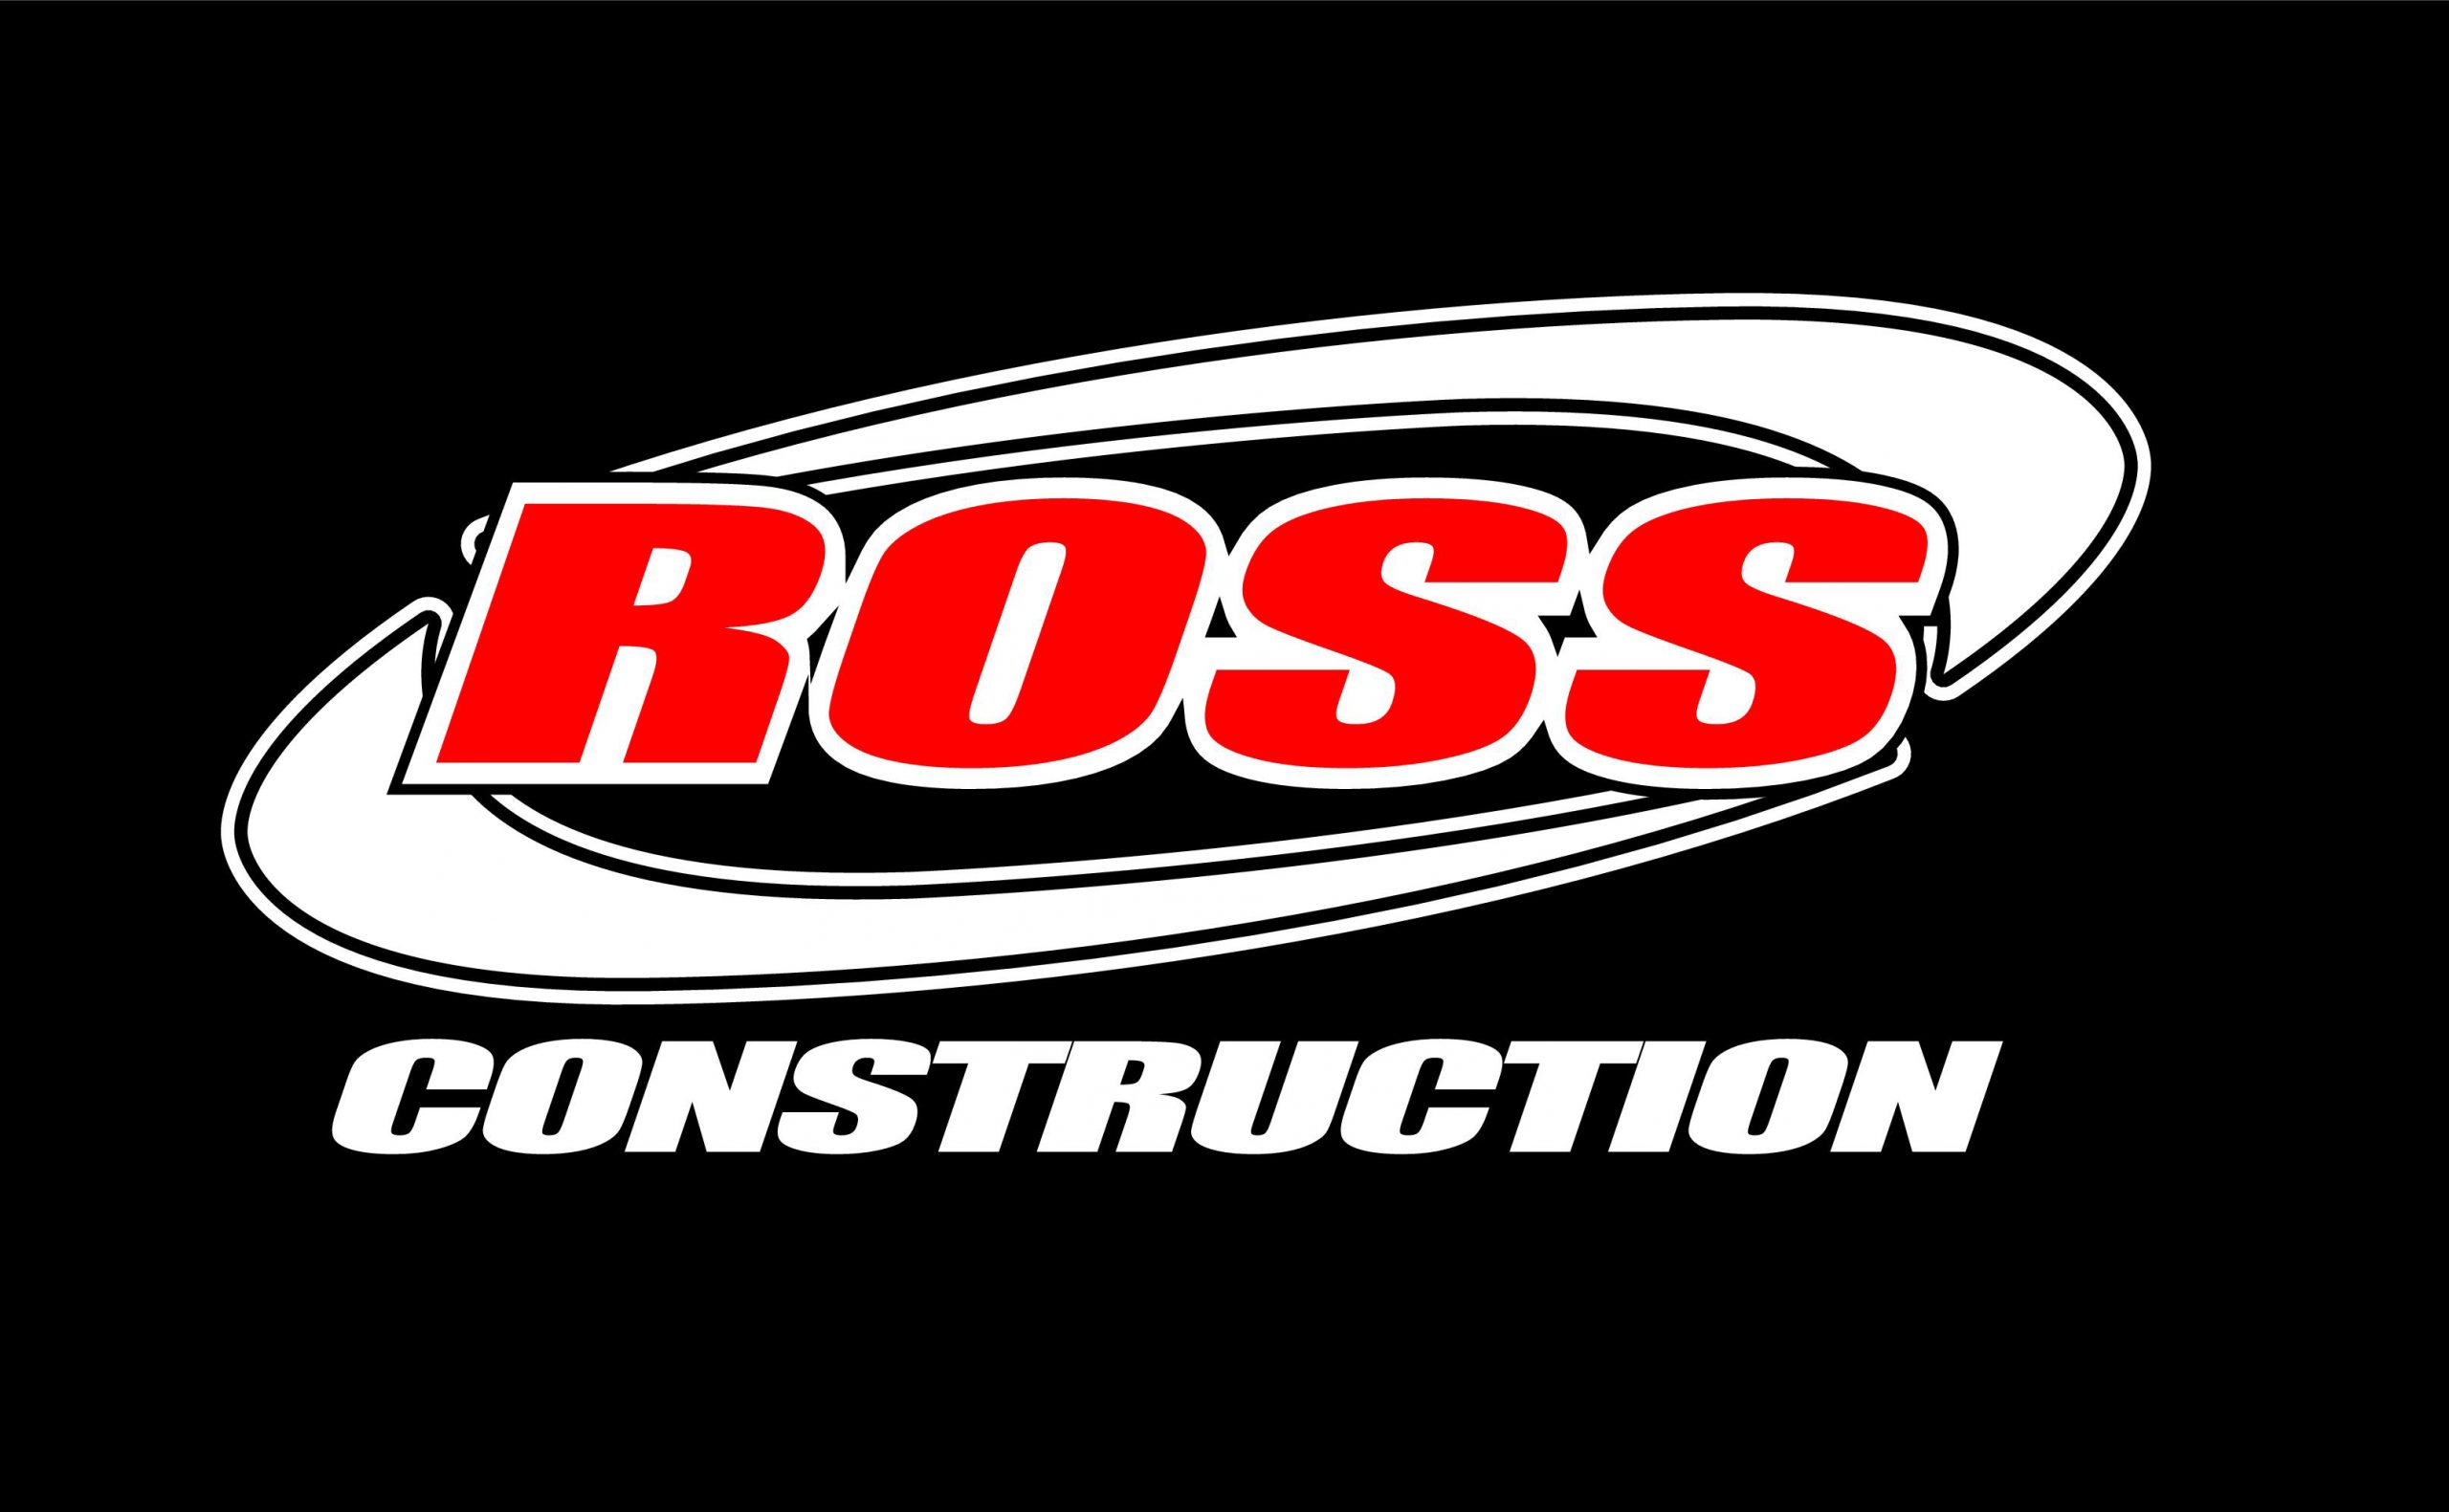 Ross Construction logo black